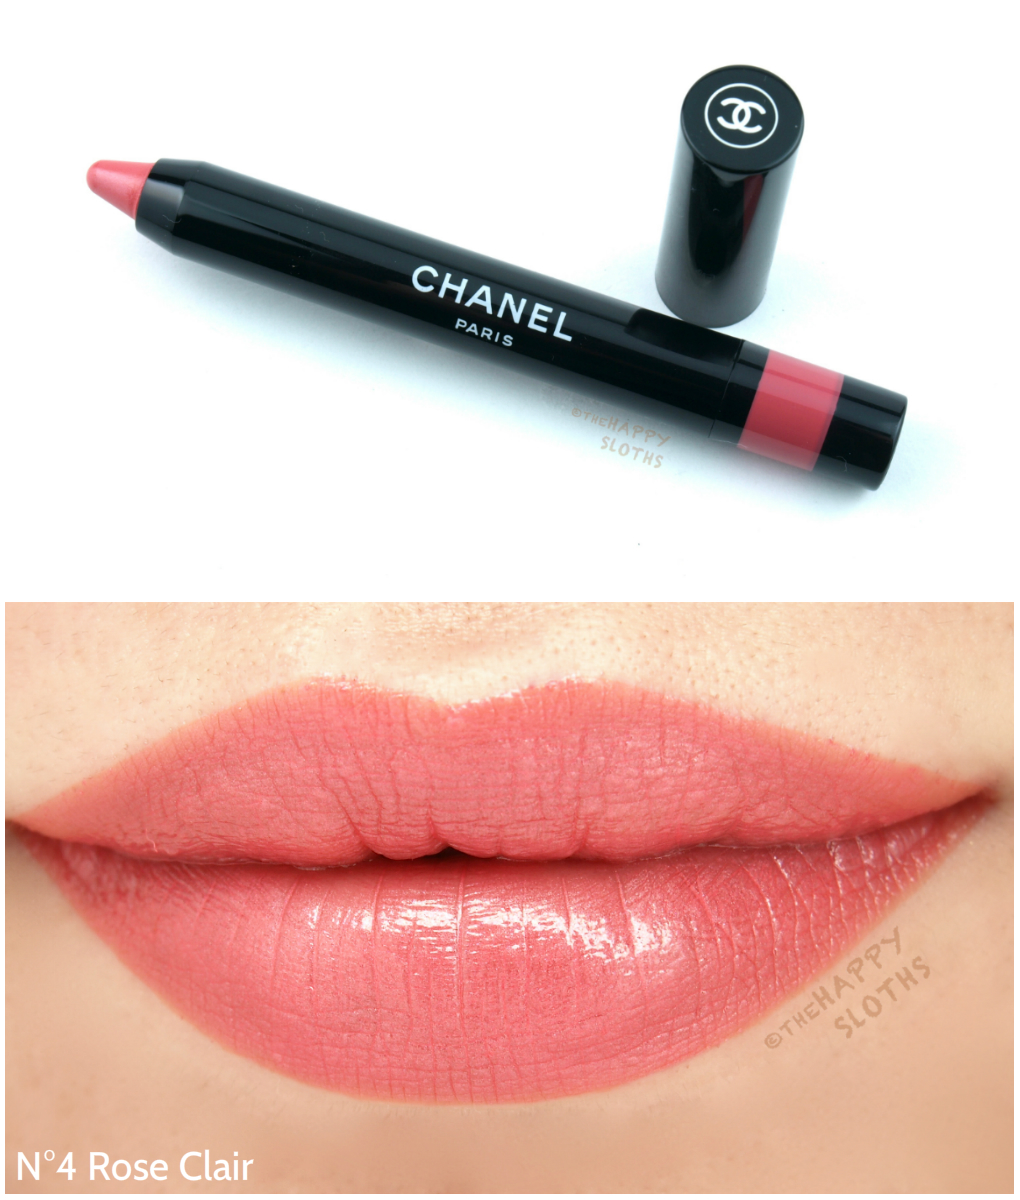 Chanel Le Rouge Crayon de Couleur Review and Swatches: N3 Rose Clair